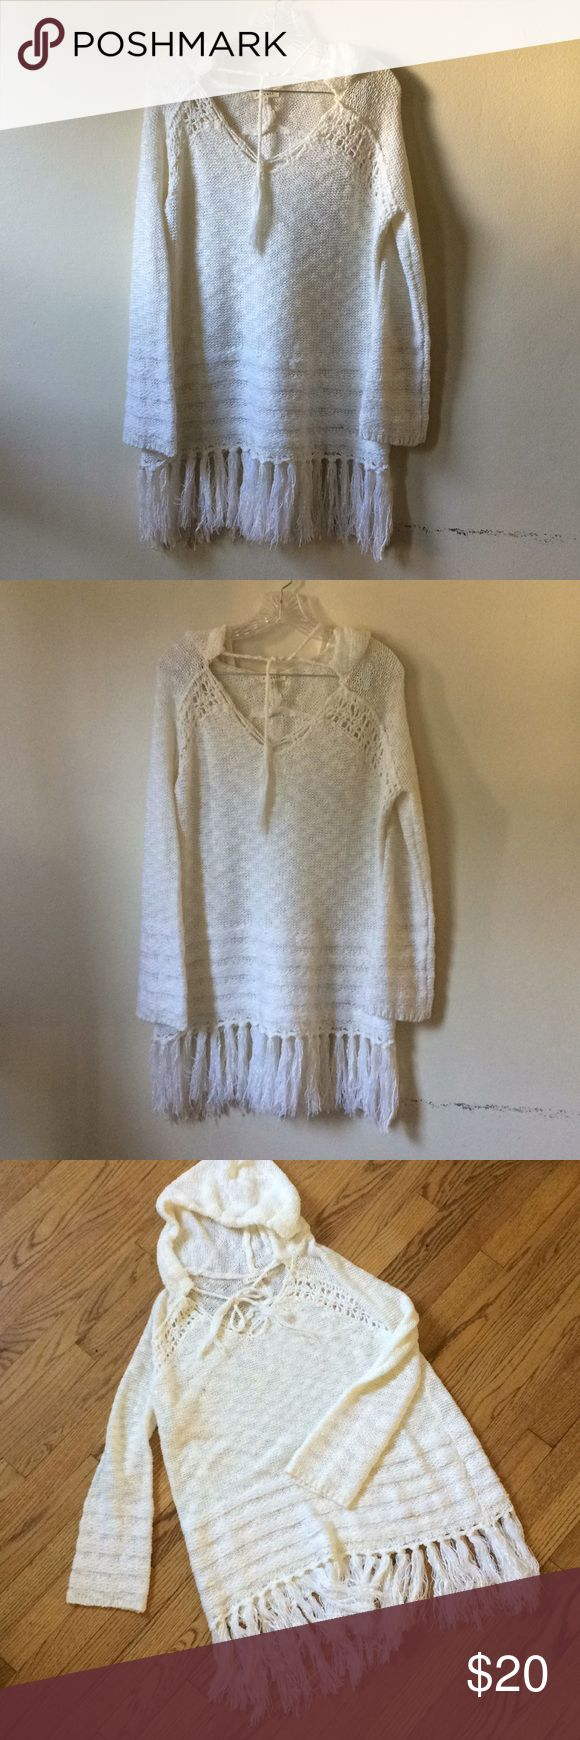 Phanuel ivory hooded knit fringed sweater This sweater was originally bought at Angl. It's in perfect condition, only worn once! No spots, stains, or holes! It's a little longer, hits at the thighs. This sweater is timeless, and is perfect for cozying up next to a beach fire on a summer night or throwing over some skinnies or leggings in the fall and winter months! Dress it up with some camel leather boots or down with your favorite Uggs. ANGL Sweaters V-Necks